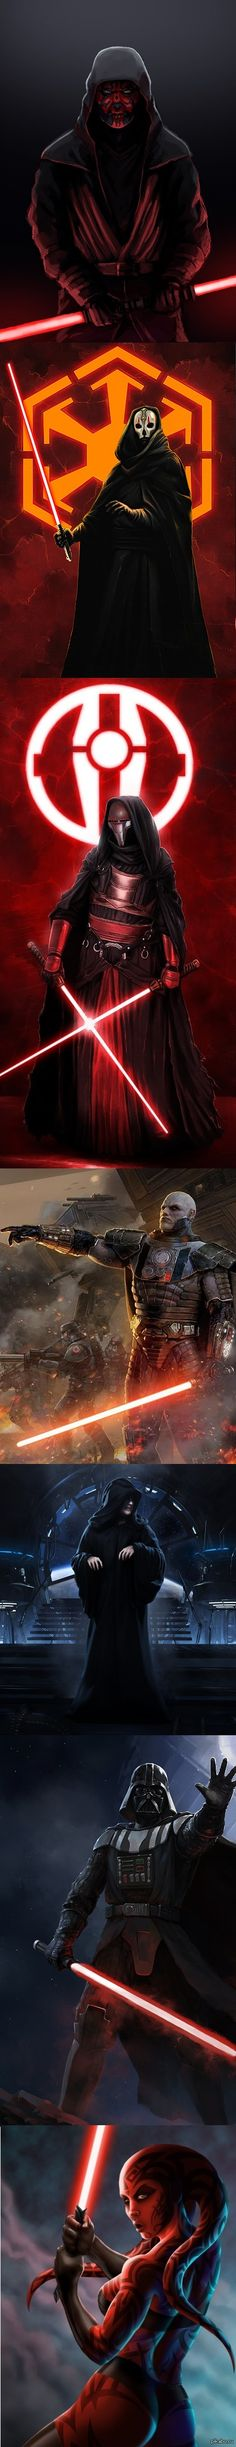 darth vader, darth maul, darth revan, darth sidious, darth malgus, darth…